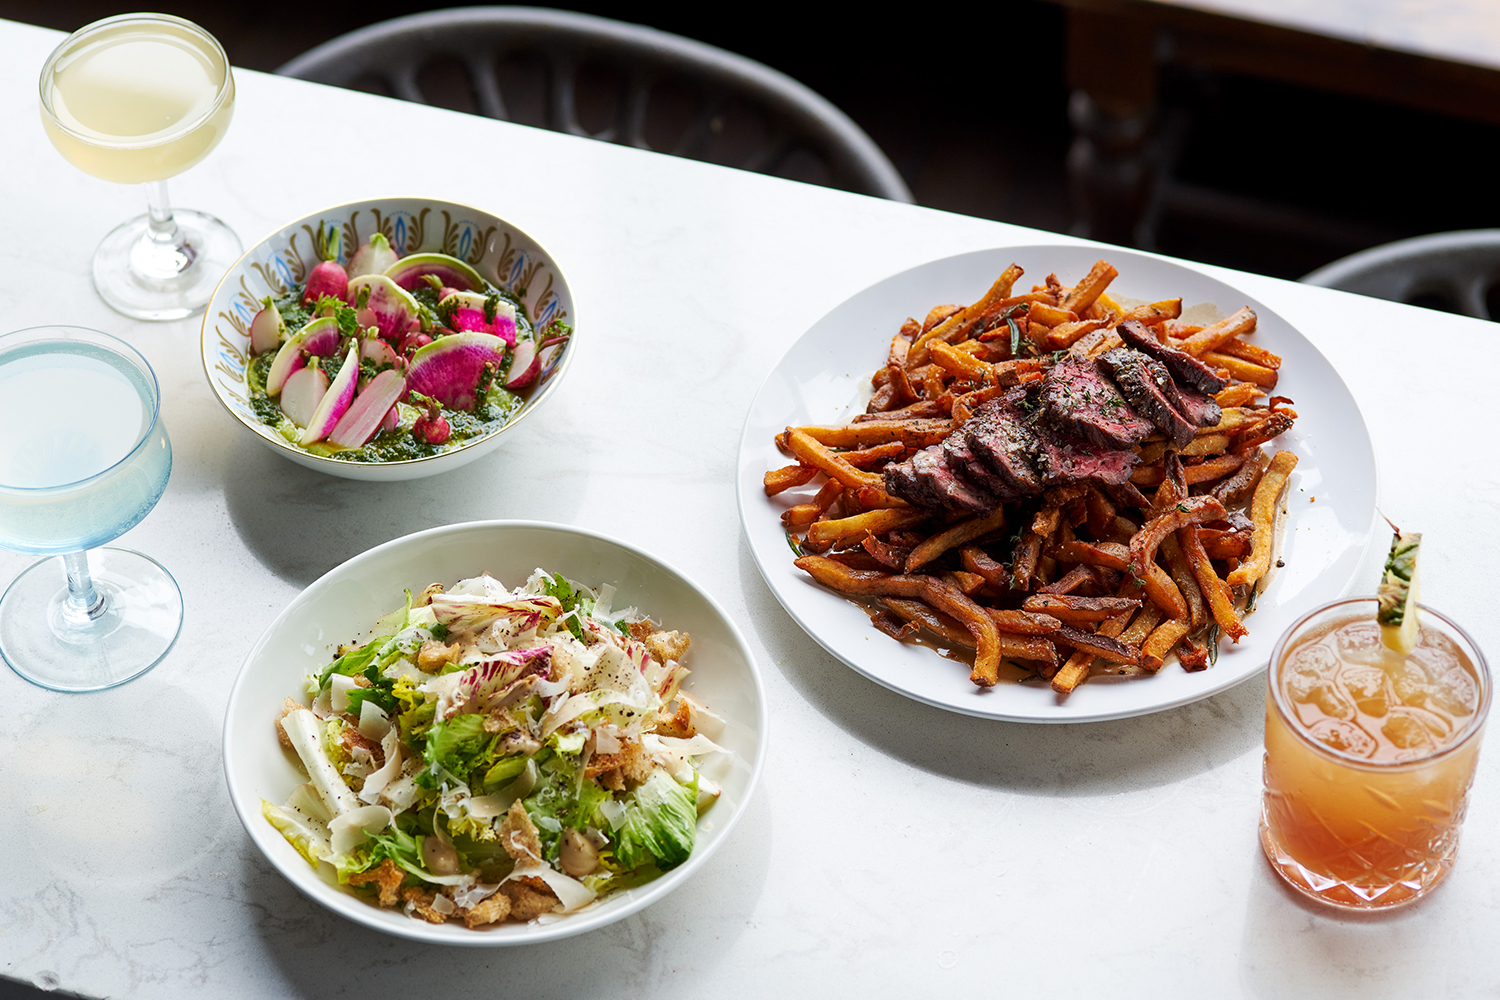 the food offerings at Chicago's Scofflaw